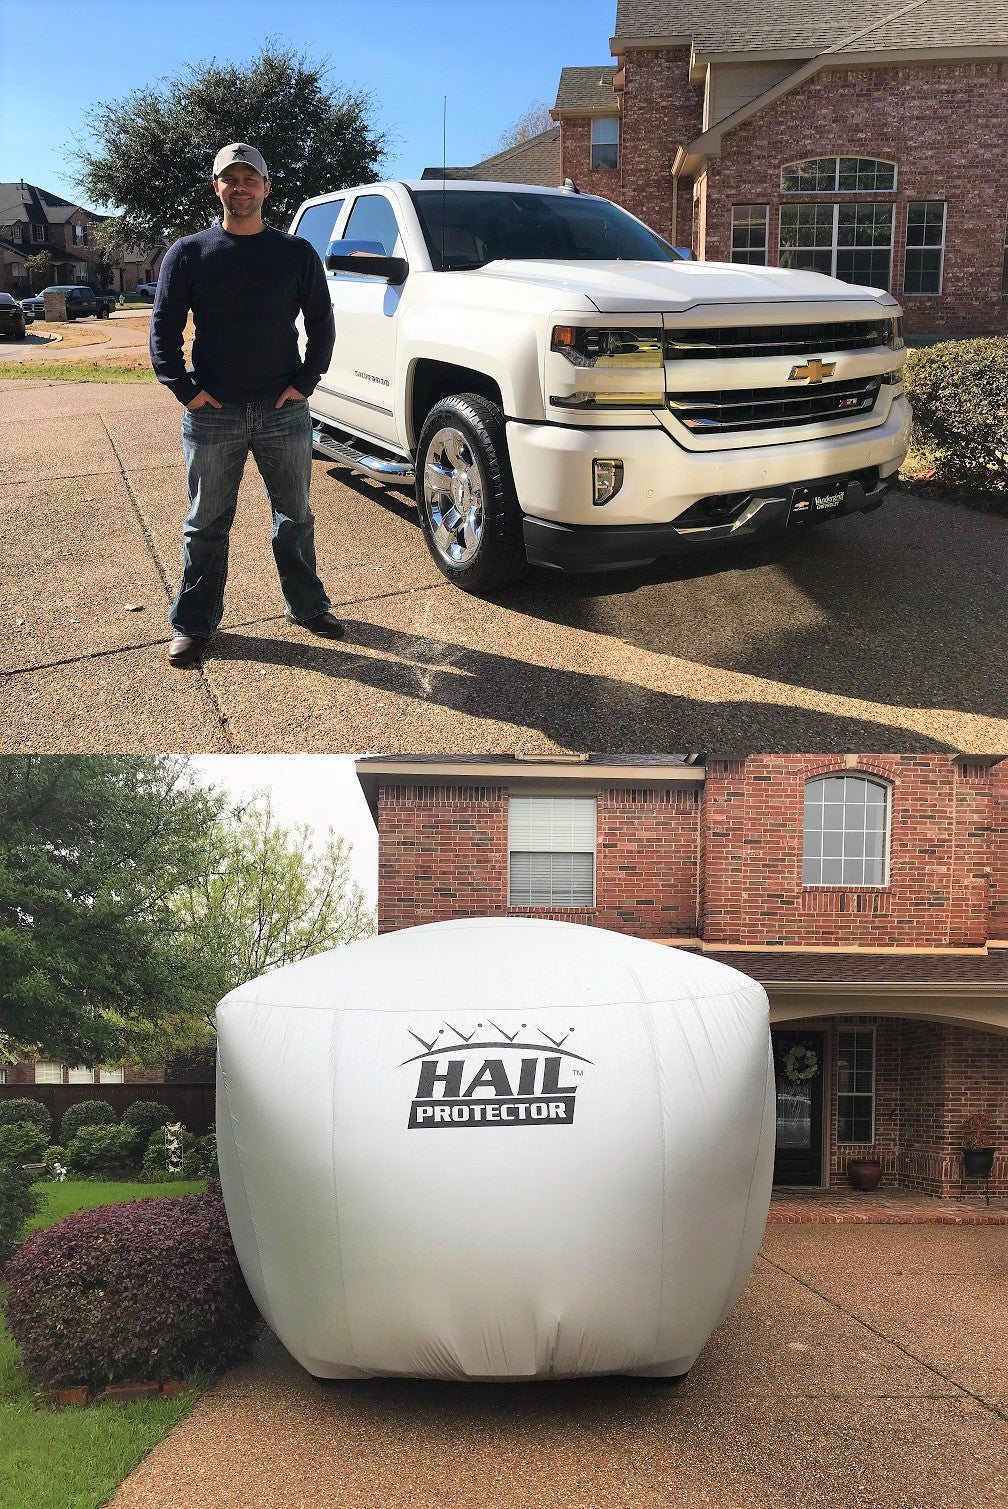 SUV2 HAIL PROTECTOR Truck and SUV (198 to 233 inches) email us to get on waiting list